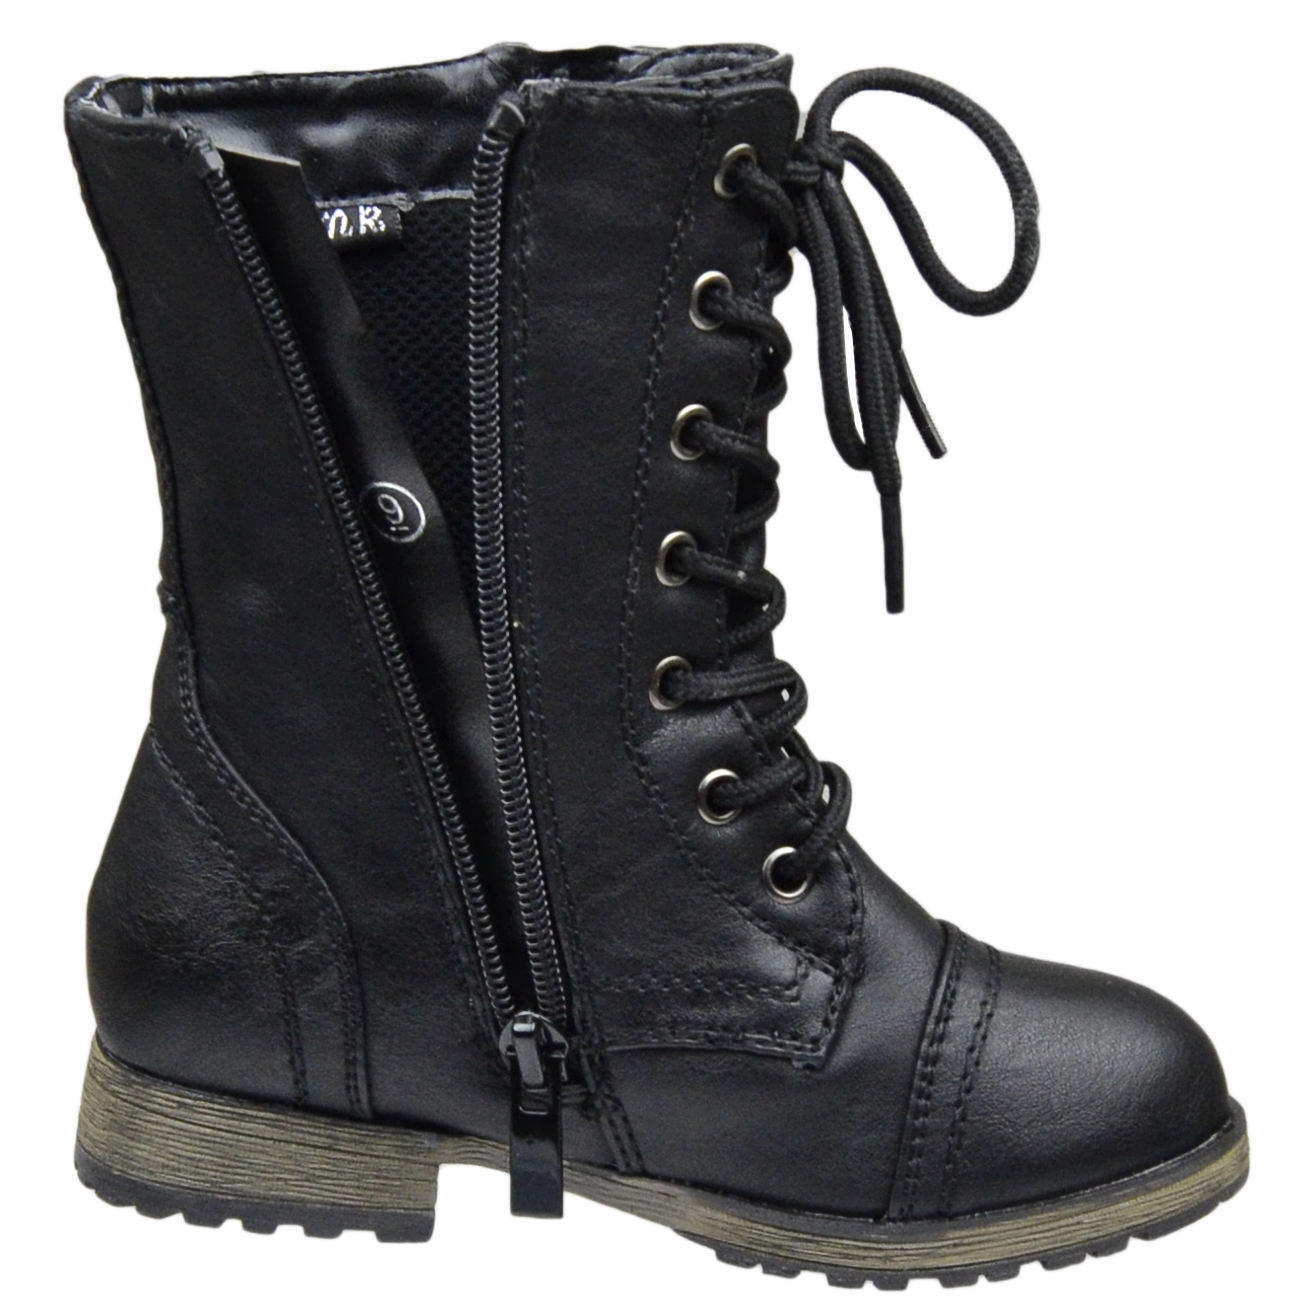 Girls Black Combat Boots zC3wG0Lx